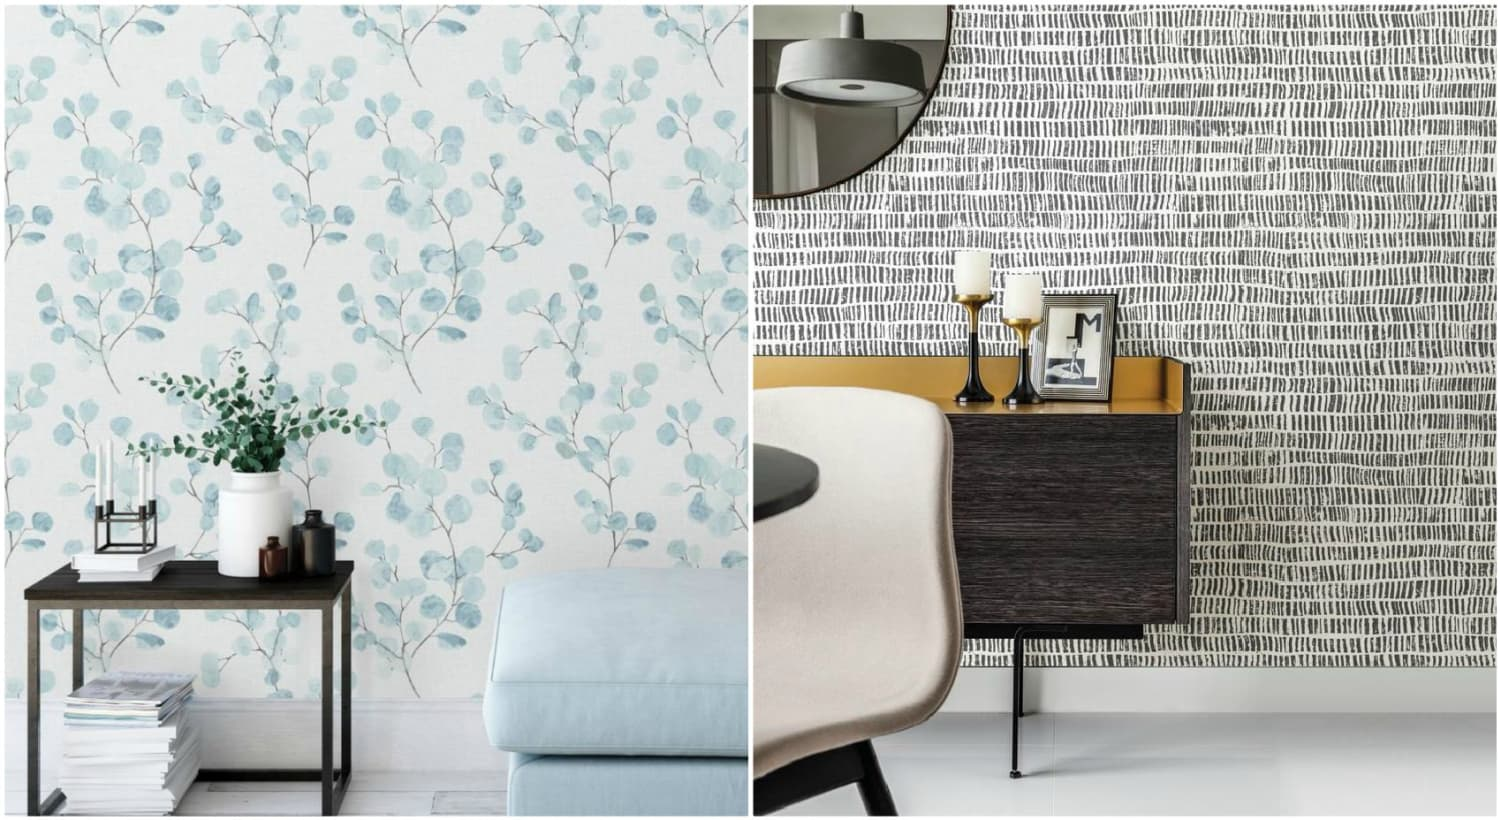 The Property Brothers Launched Peel-and-Stick Wallpaper, and It's Time to Redecorate